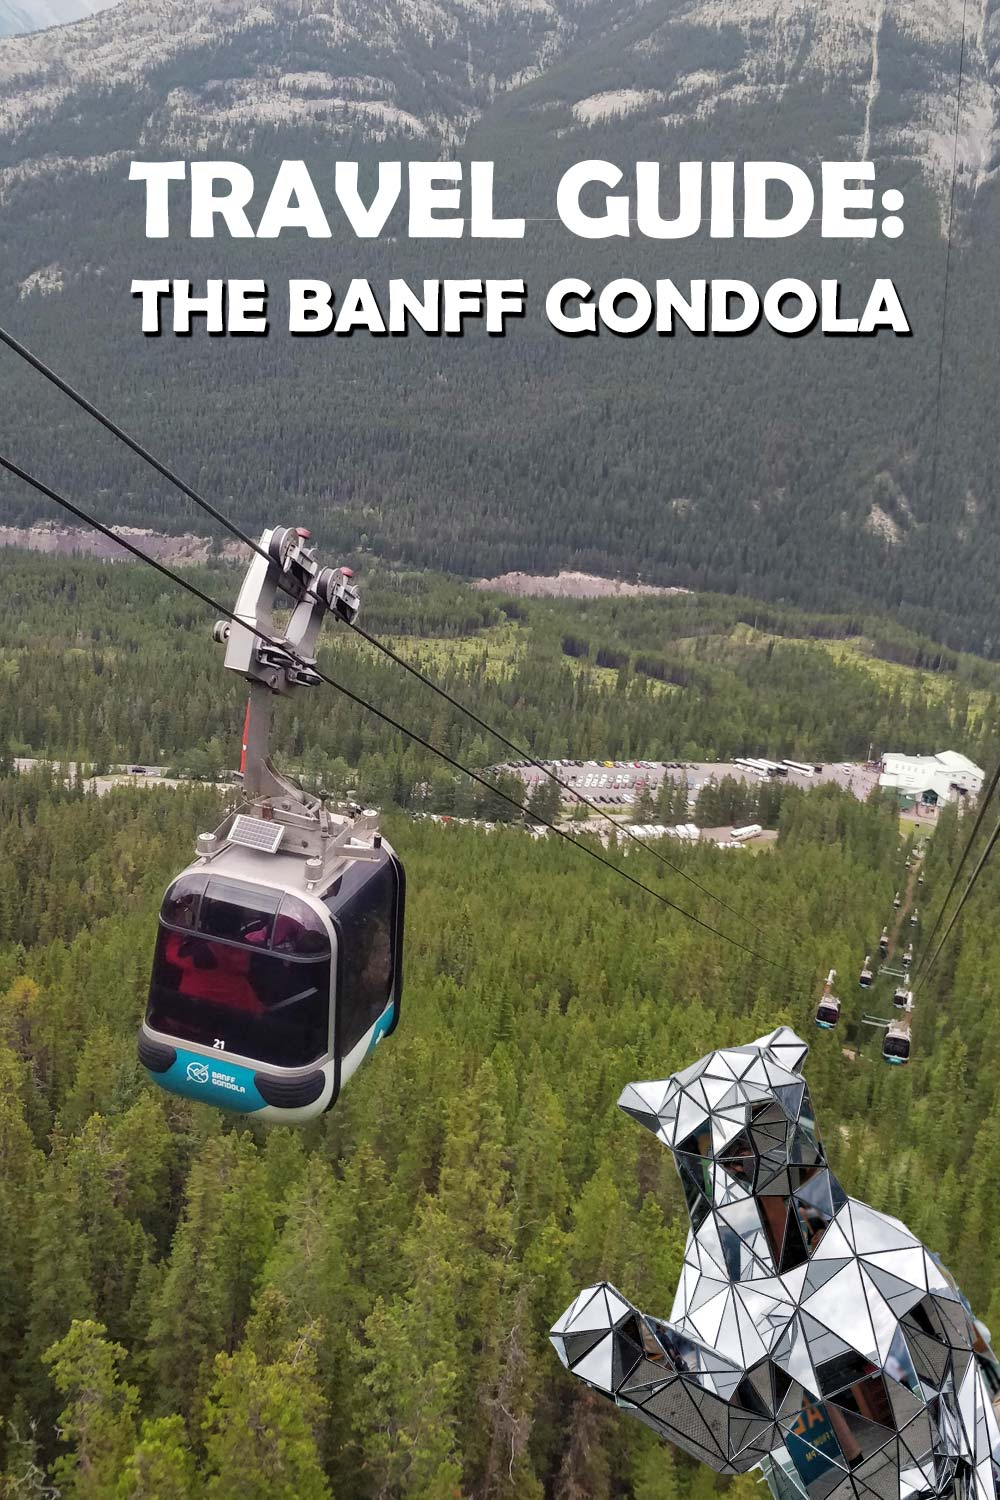 Travel Guide to the Banff Gondola for Pinterest